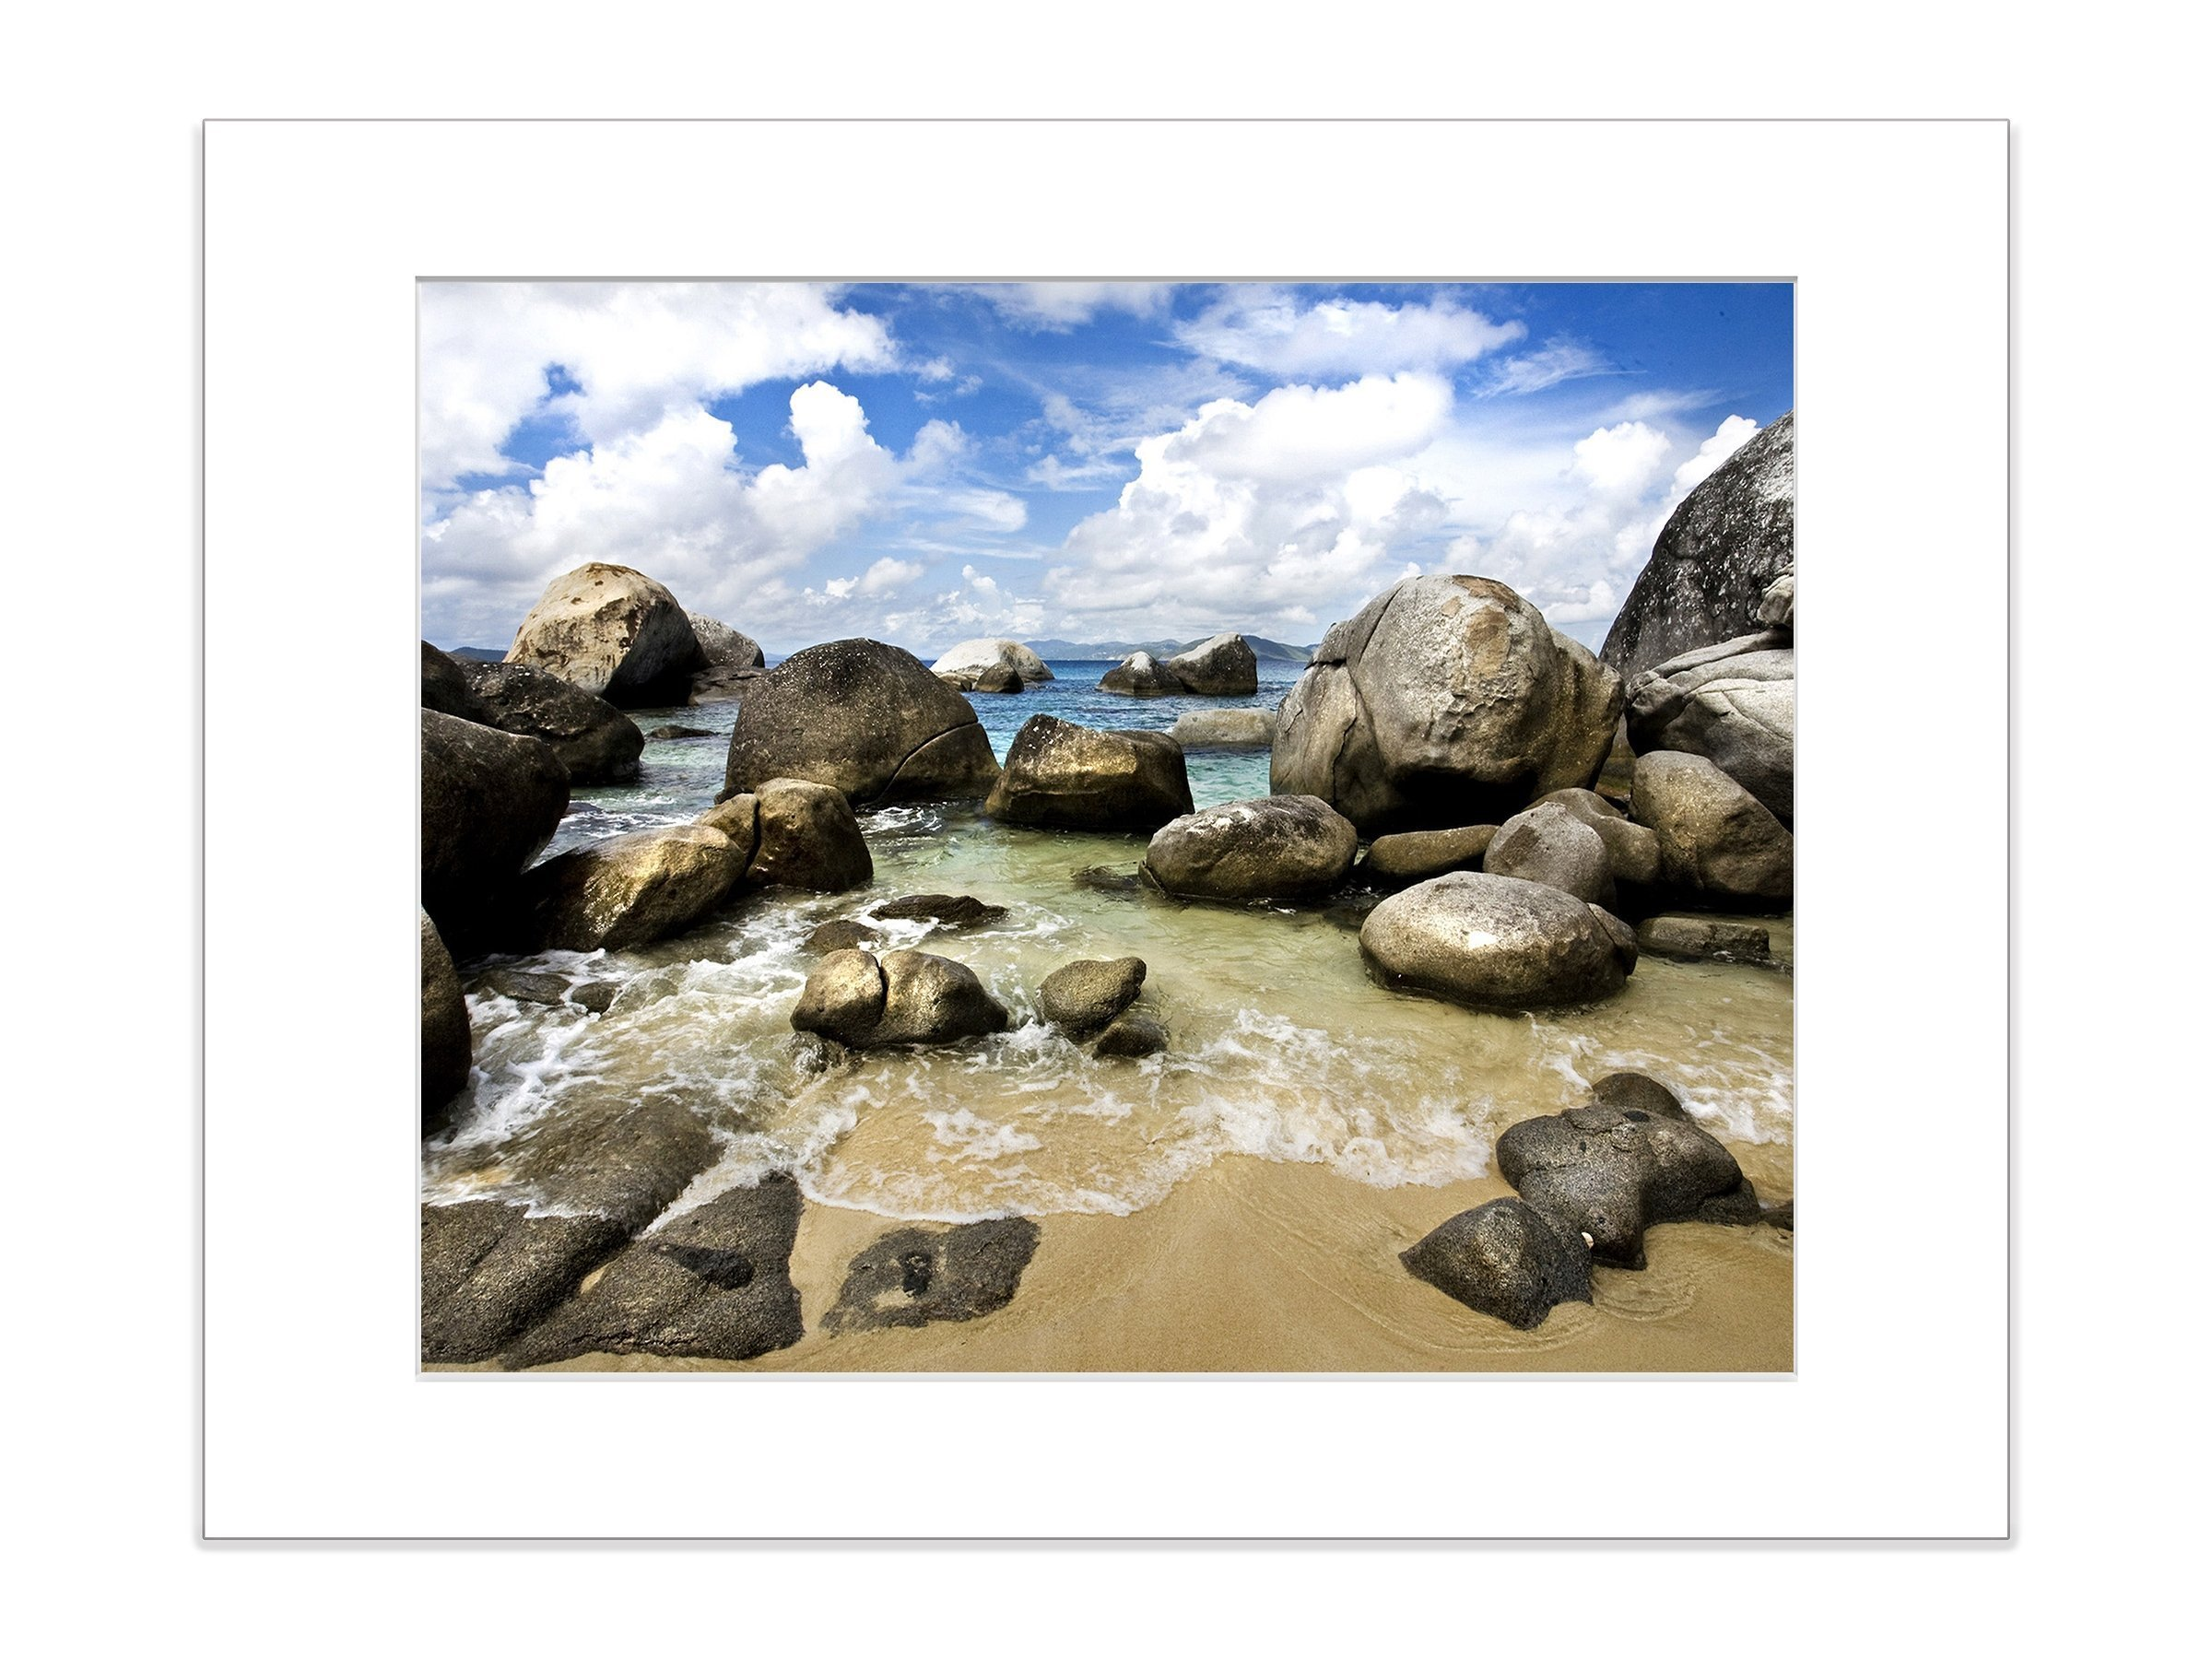 Coastal Beach Photography Sand Waves Boulders Tropical 5x7 Inch Matted Print